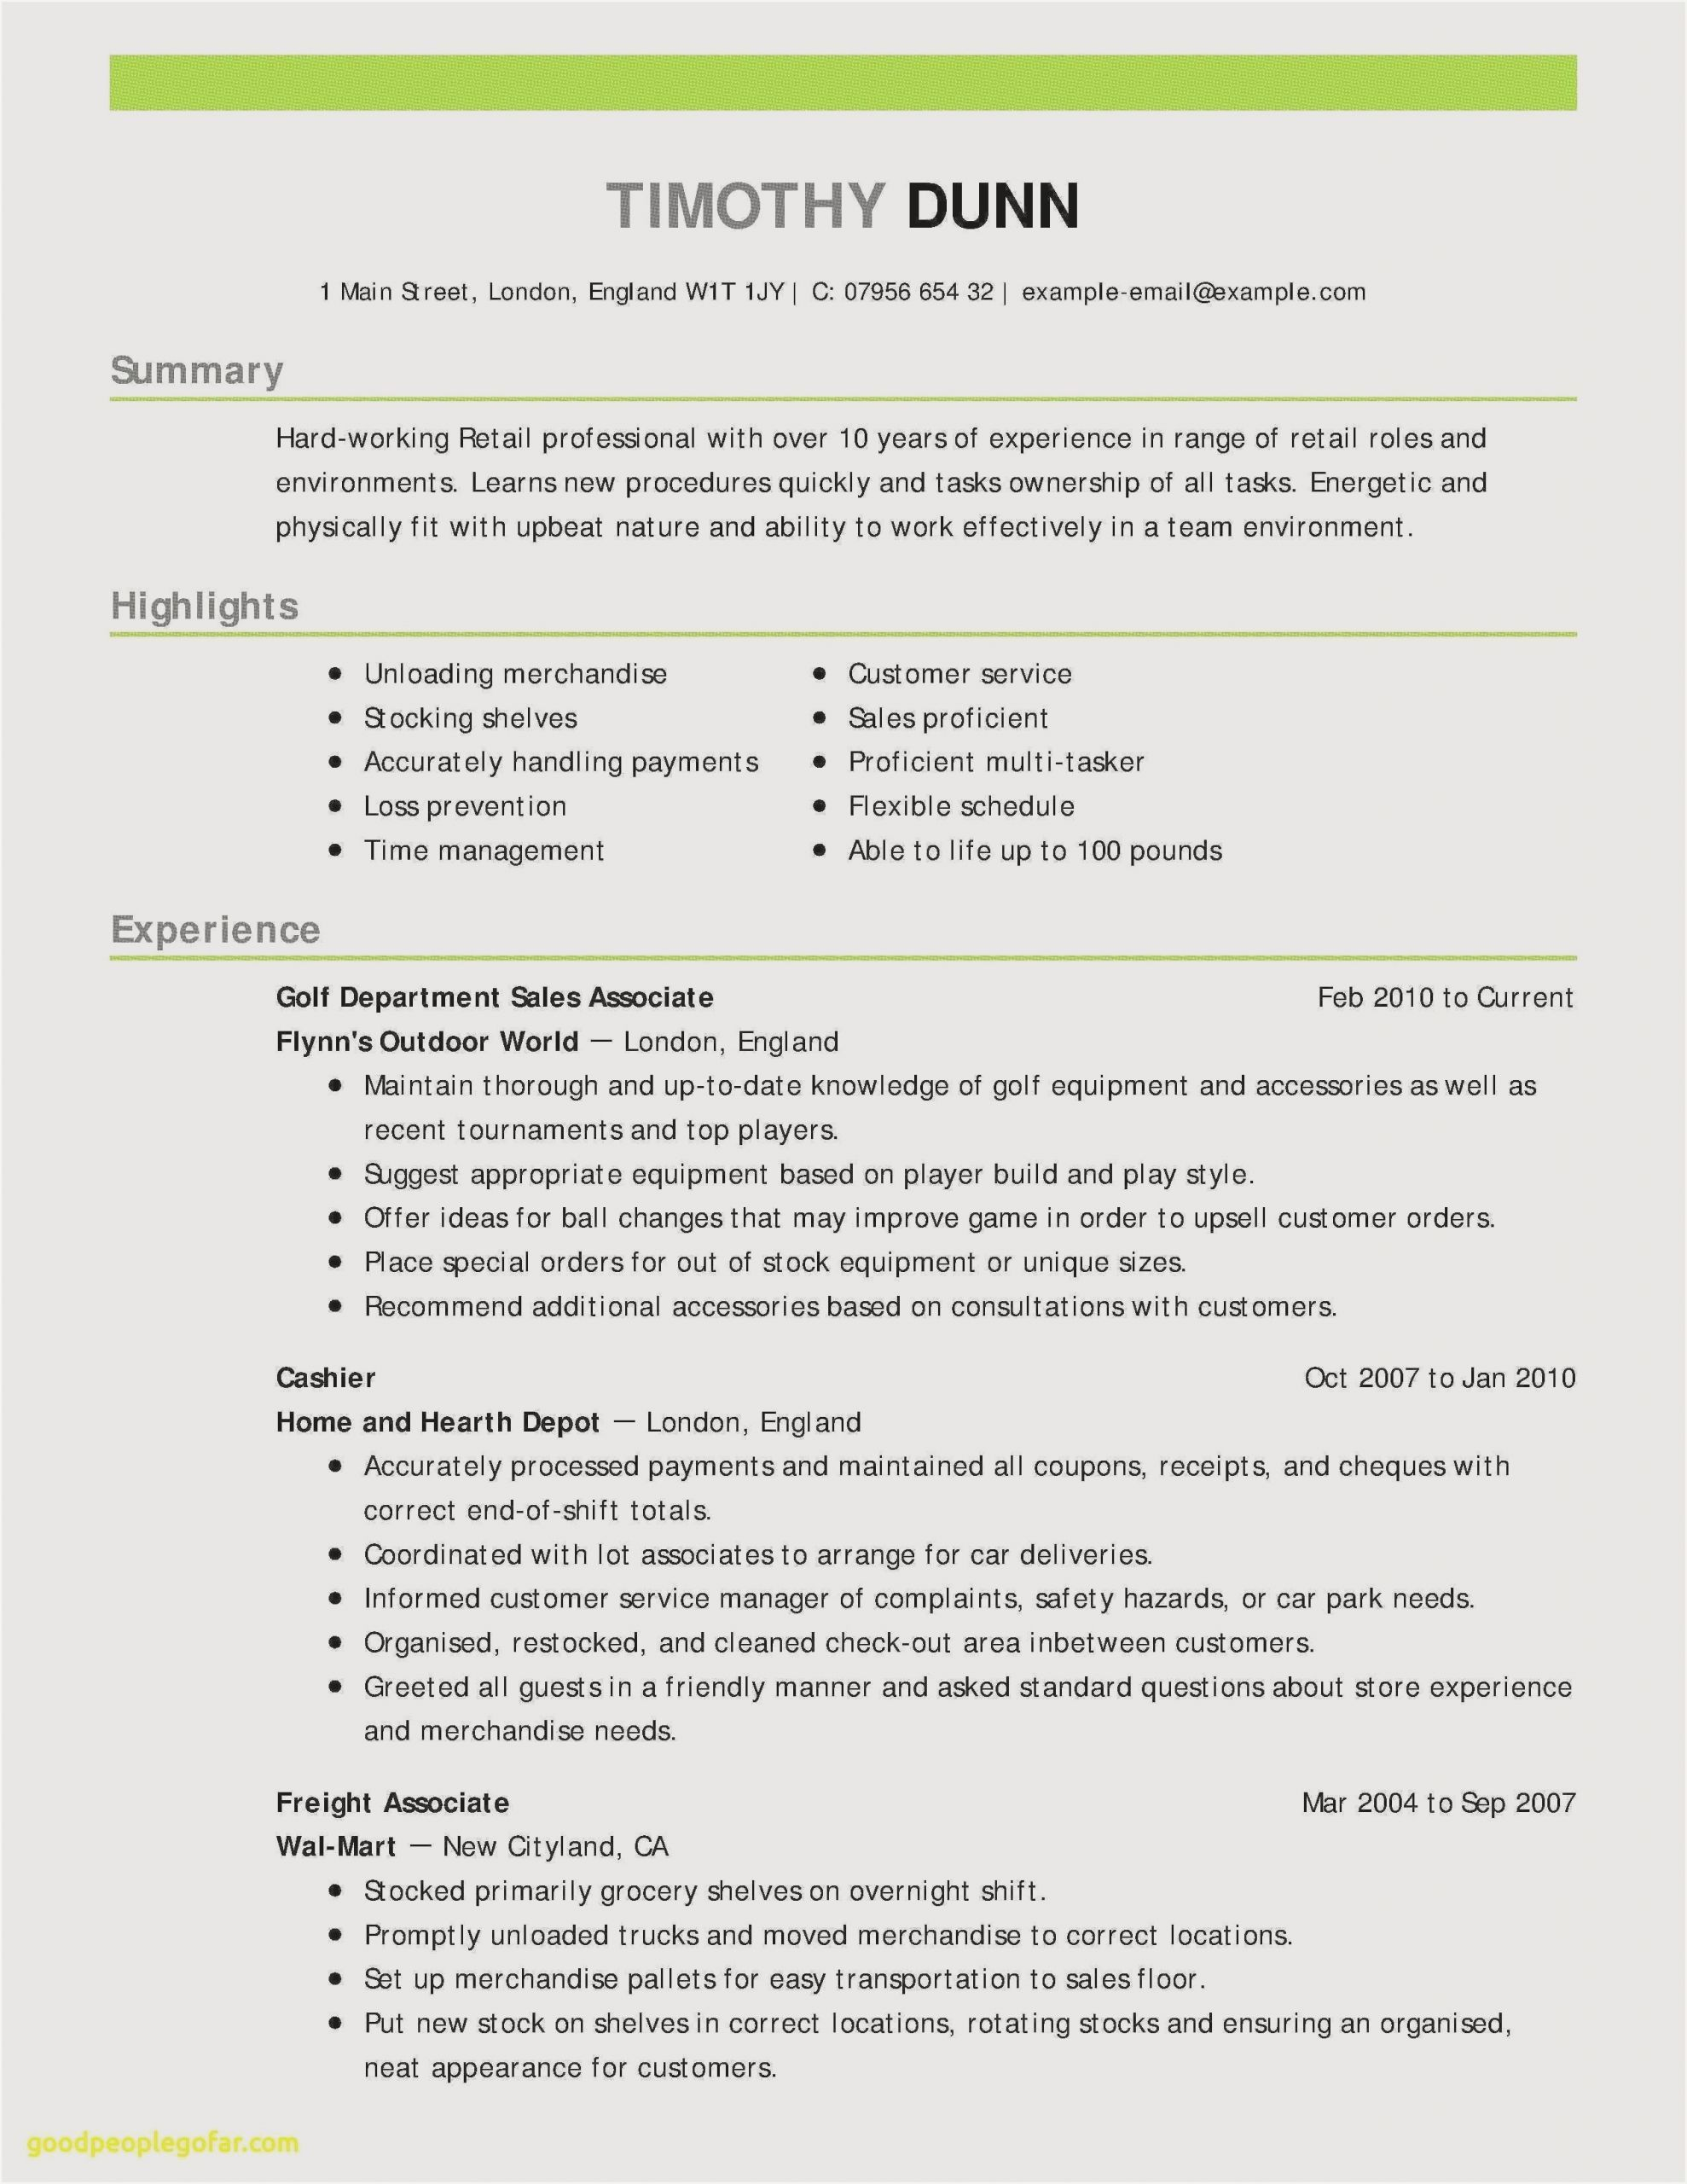 retail customer service resume samples free sample summary template scaled law school Resume Resume Summary Template Free